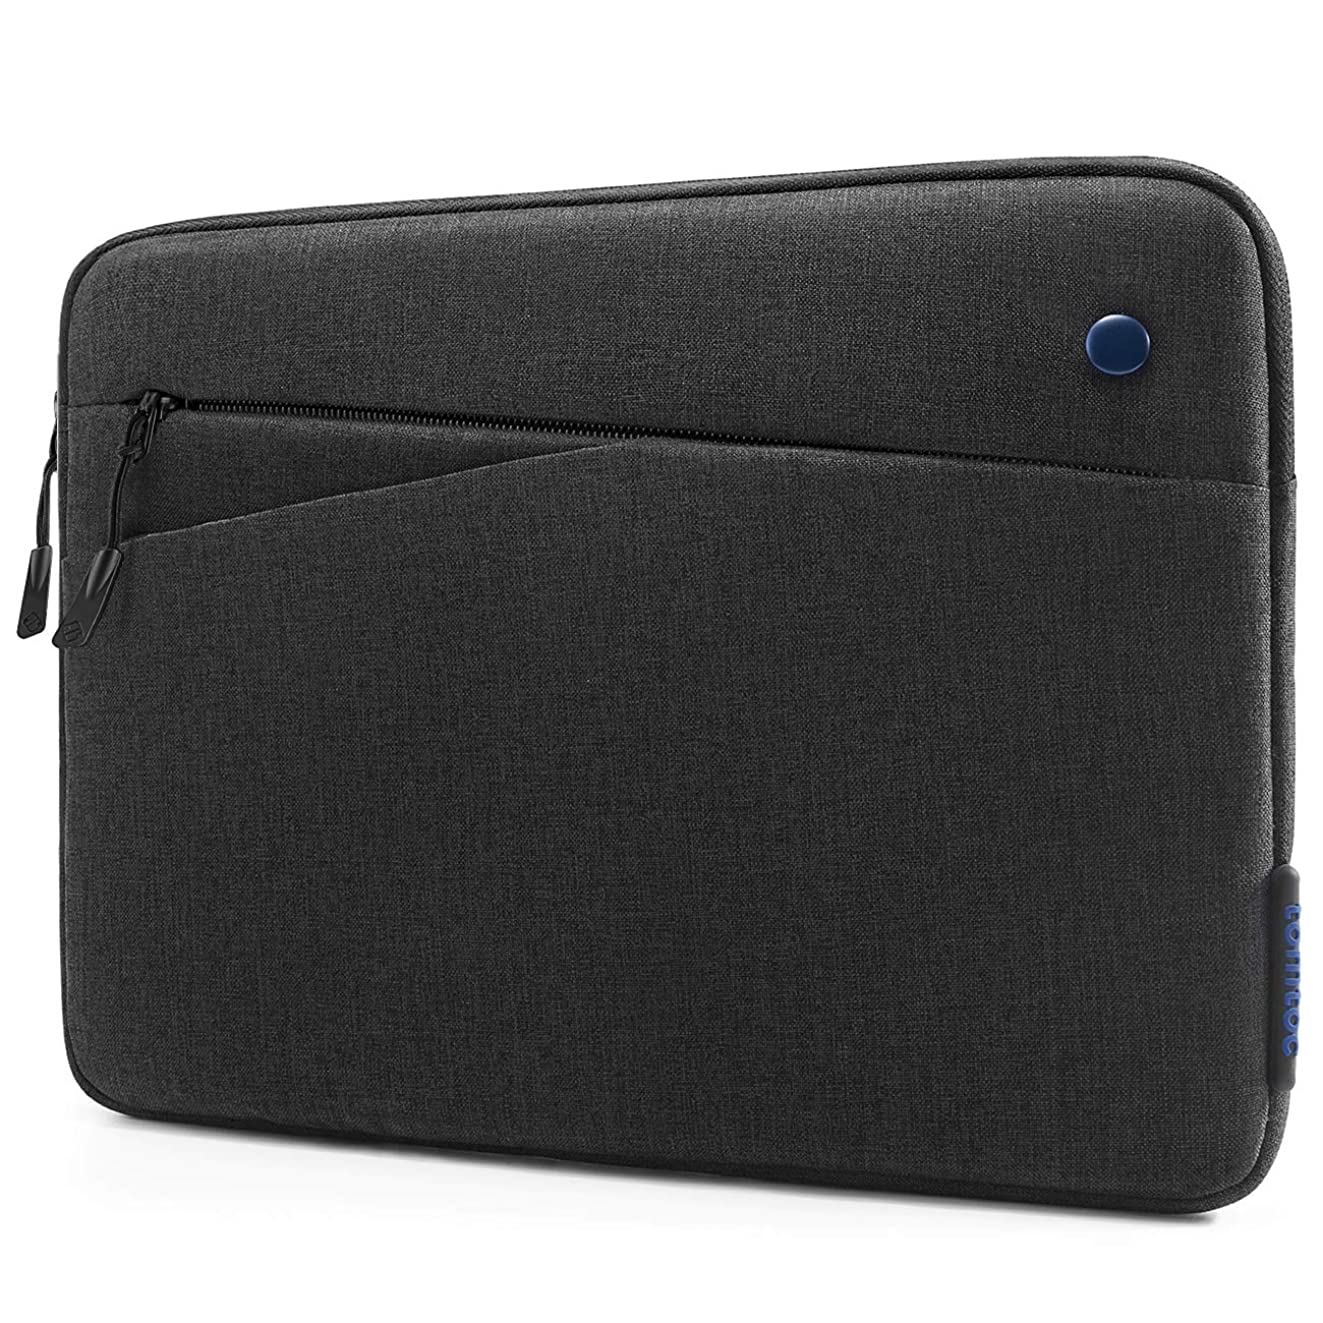 "tomtoc 10.5-11 inch Tablet Sleeve for 11"" New iPad Pro 2018, 10.5"" New iPad Air 2019/ iPad Pro, Microsoft Surface Go, Samsung Galaxy Tab, Fit for Apple Pencil & Smart Keyboard"